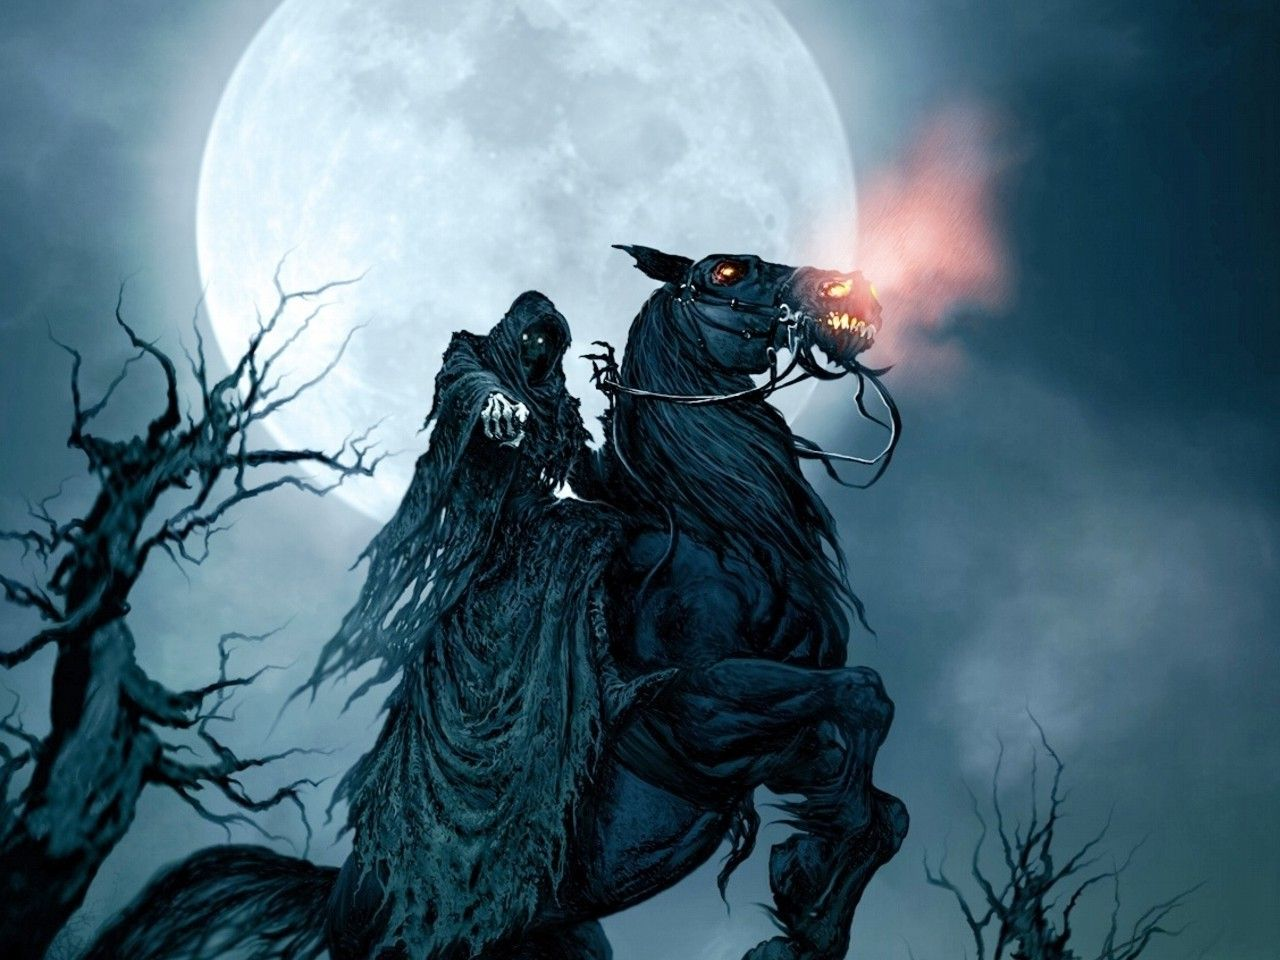 Grim Reaper On Horse Wallpaper High Definition For Desktop